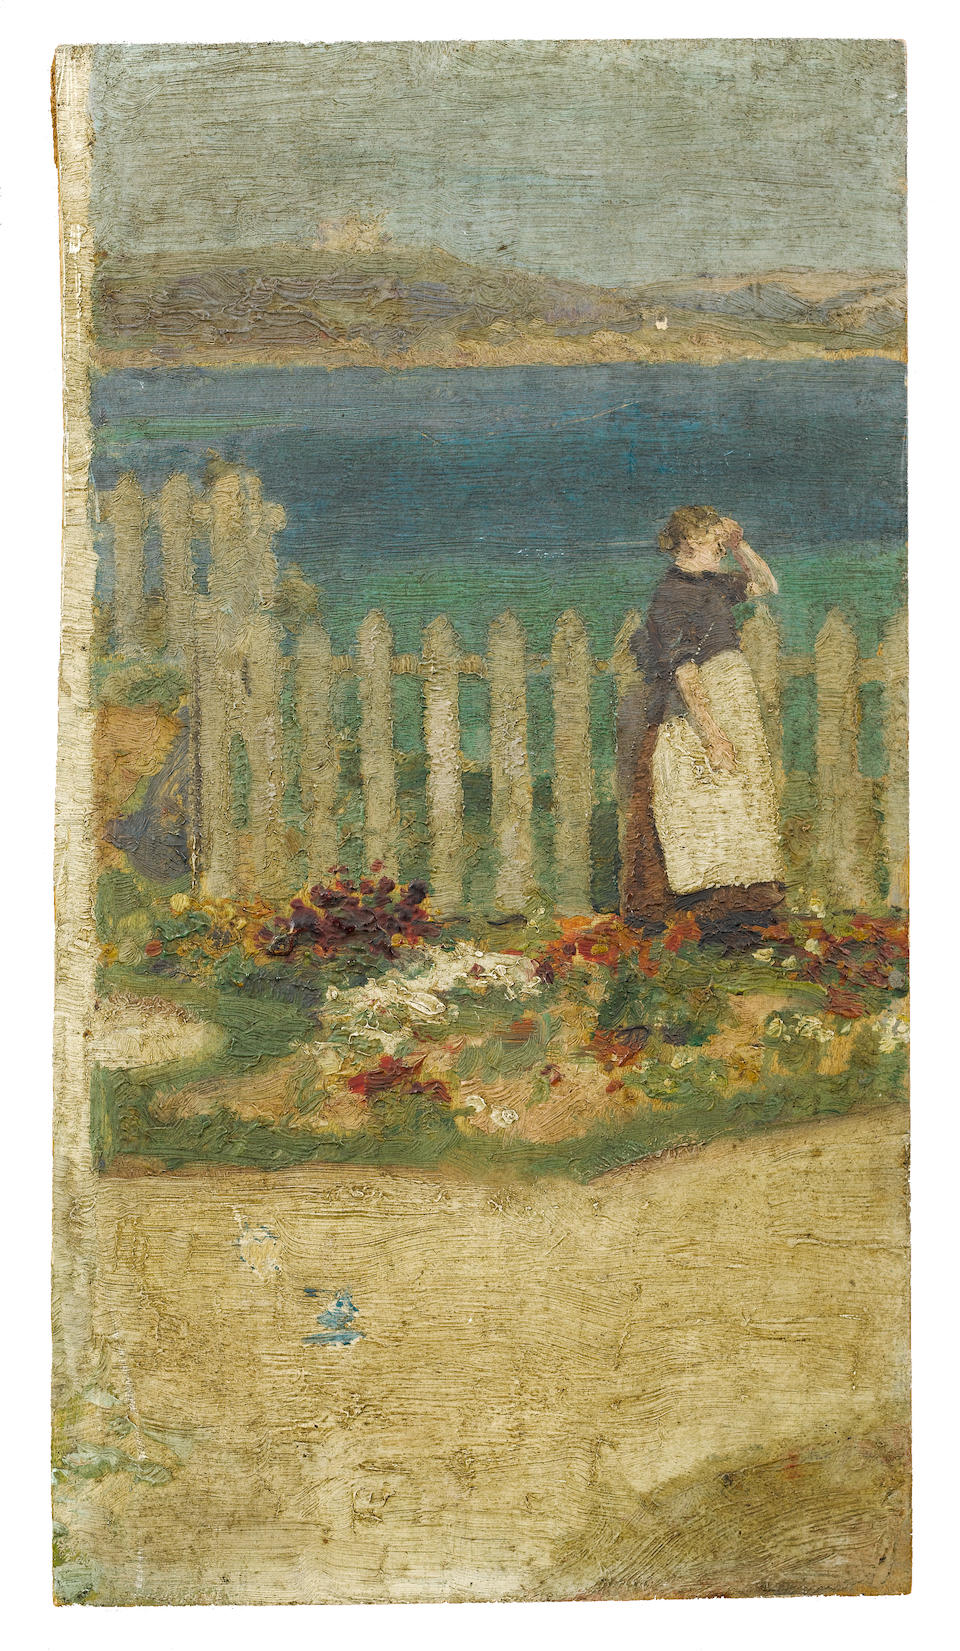 Henry Scott Tuke, RA, RWS (British, 1858-1929) Boy with hat (recto), Italian man with hat (verso); Boy in straw hat (recto), Lady looking out to sea (verso)